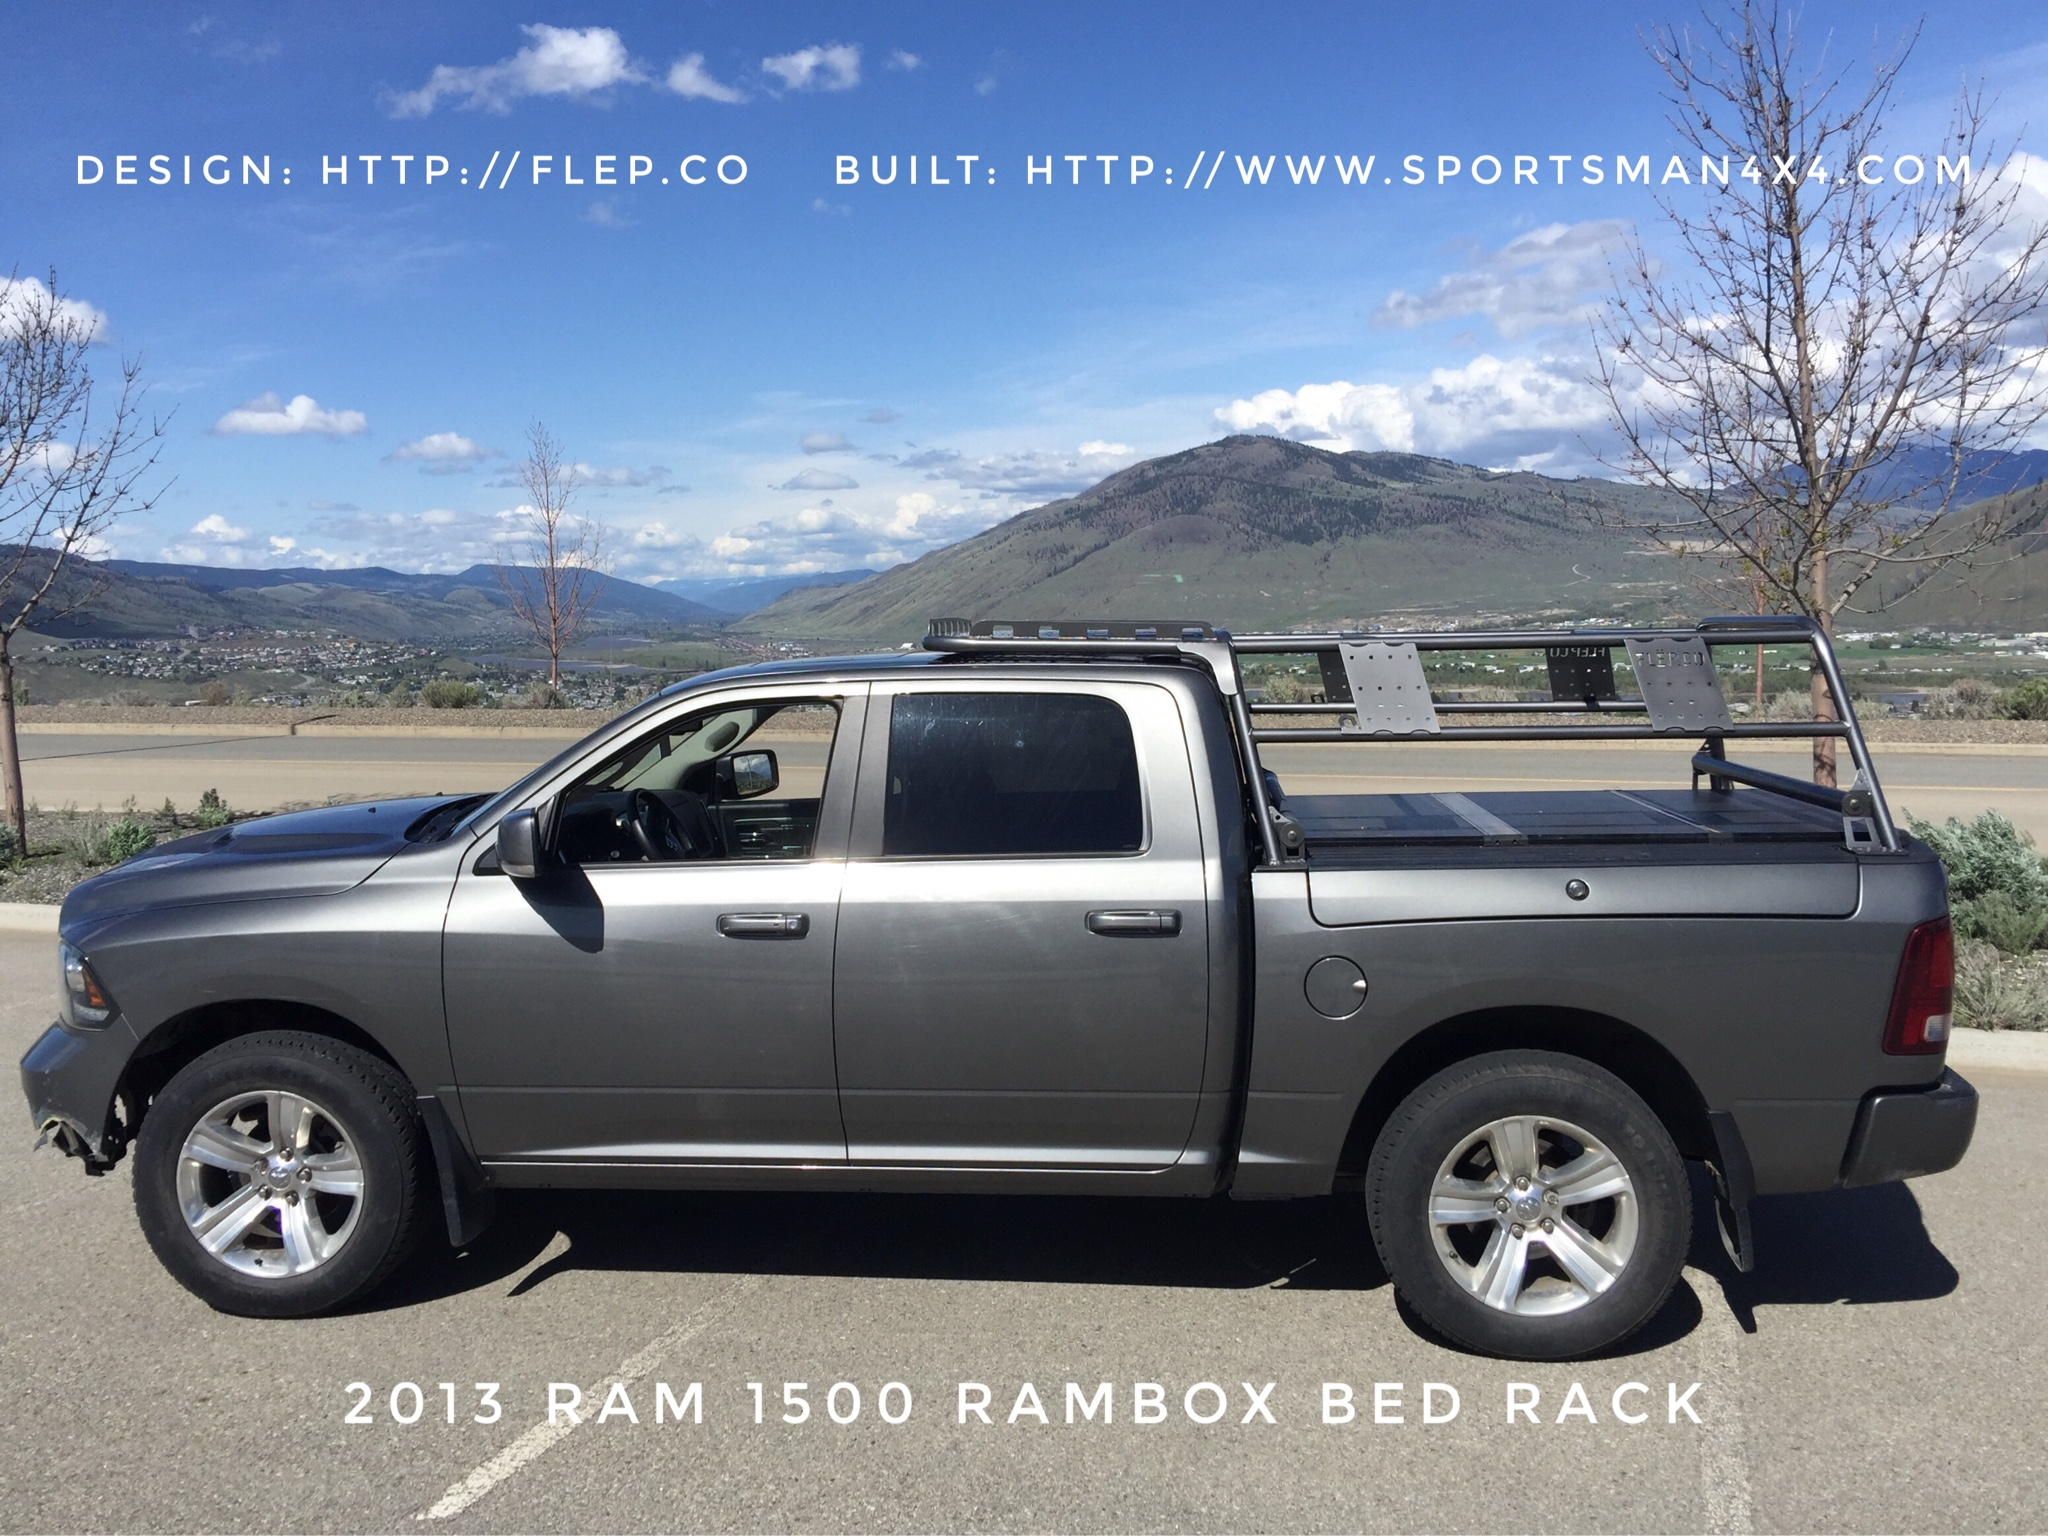 Bed Rack for Ram - American Expedition Vehicles - Product ...